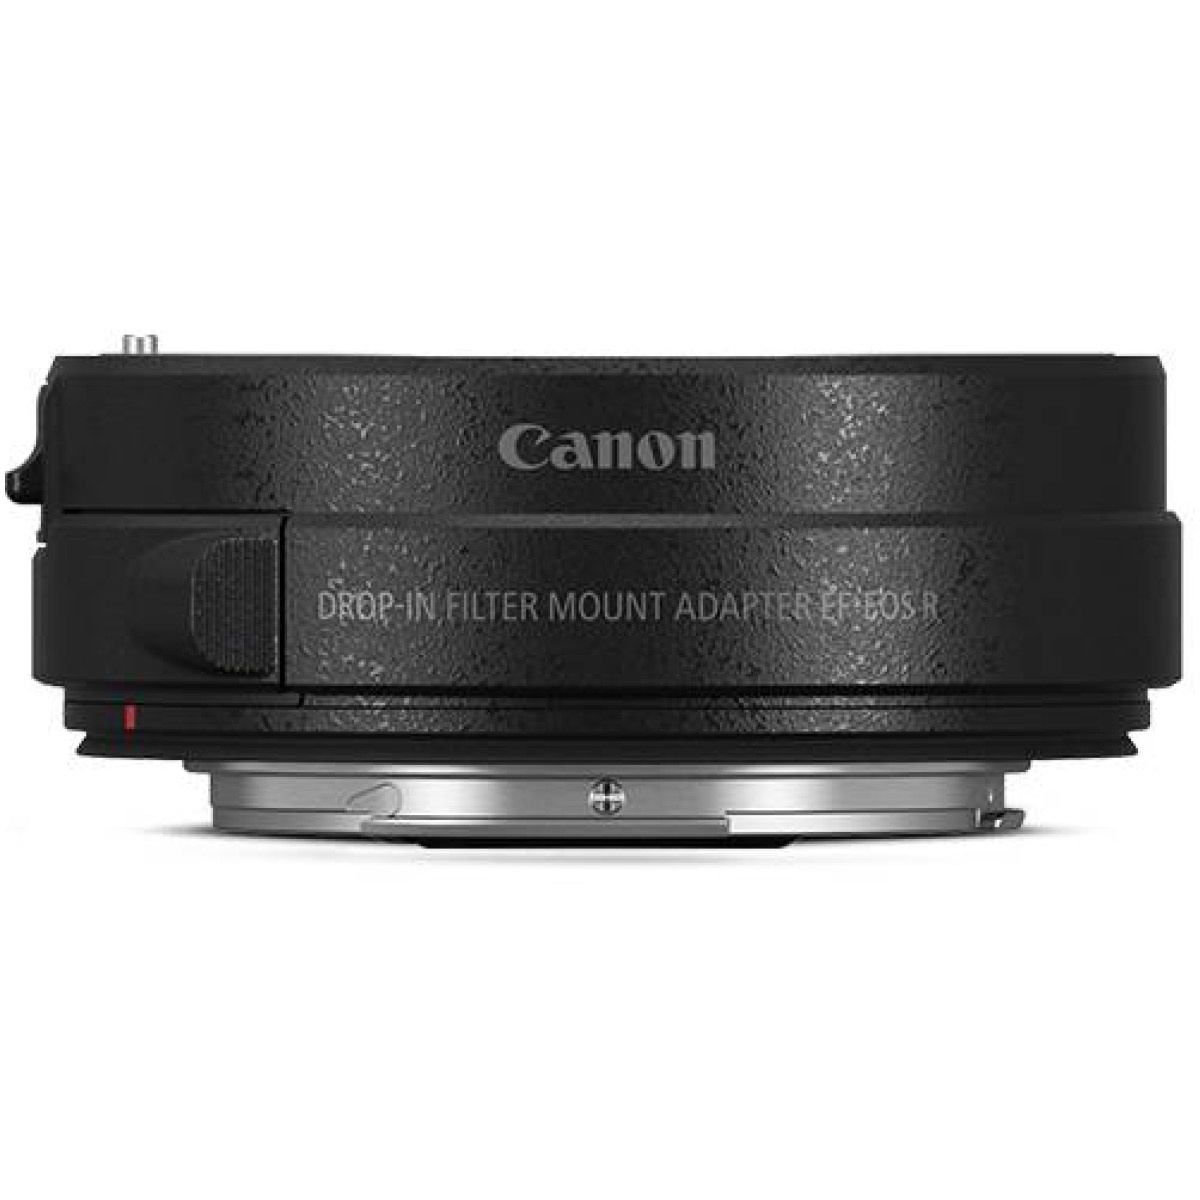 Canon Adapter EF-EOS R für C-PL Drop-In Filter